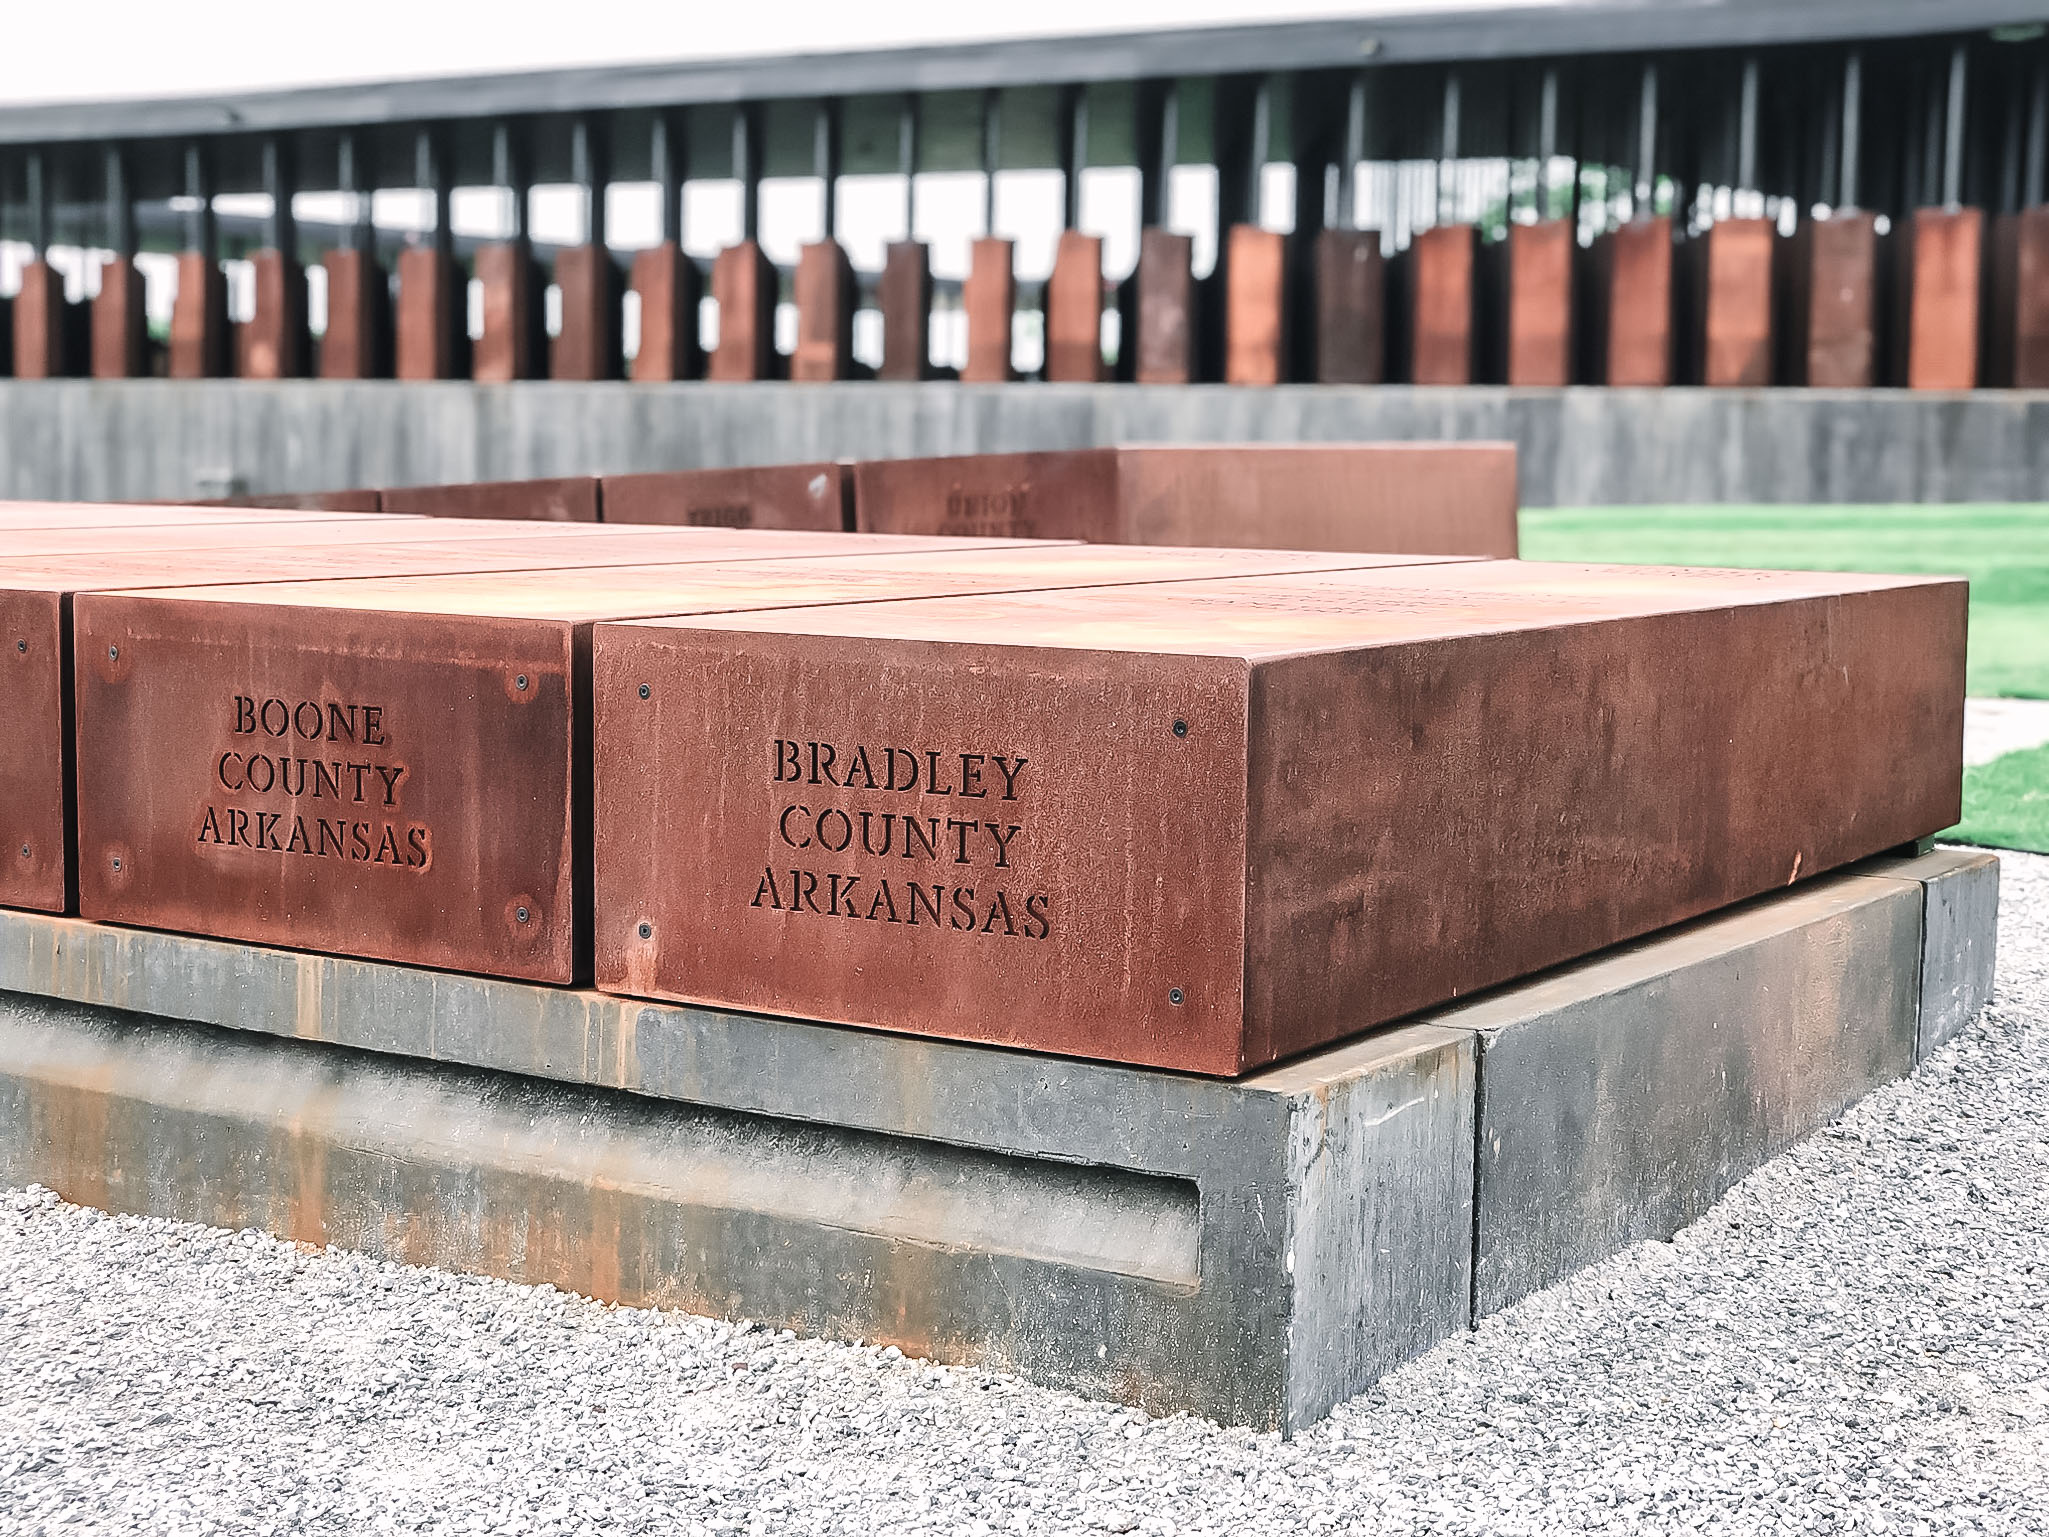 Duplicates of the monuments lie outside like coffins, waiting to be claimed and acknowledged by the counties in which the lynchings took place. Over time, it will be telling to see what counties claim the monuments, and which ones don't.